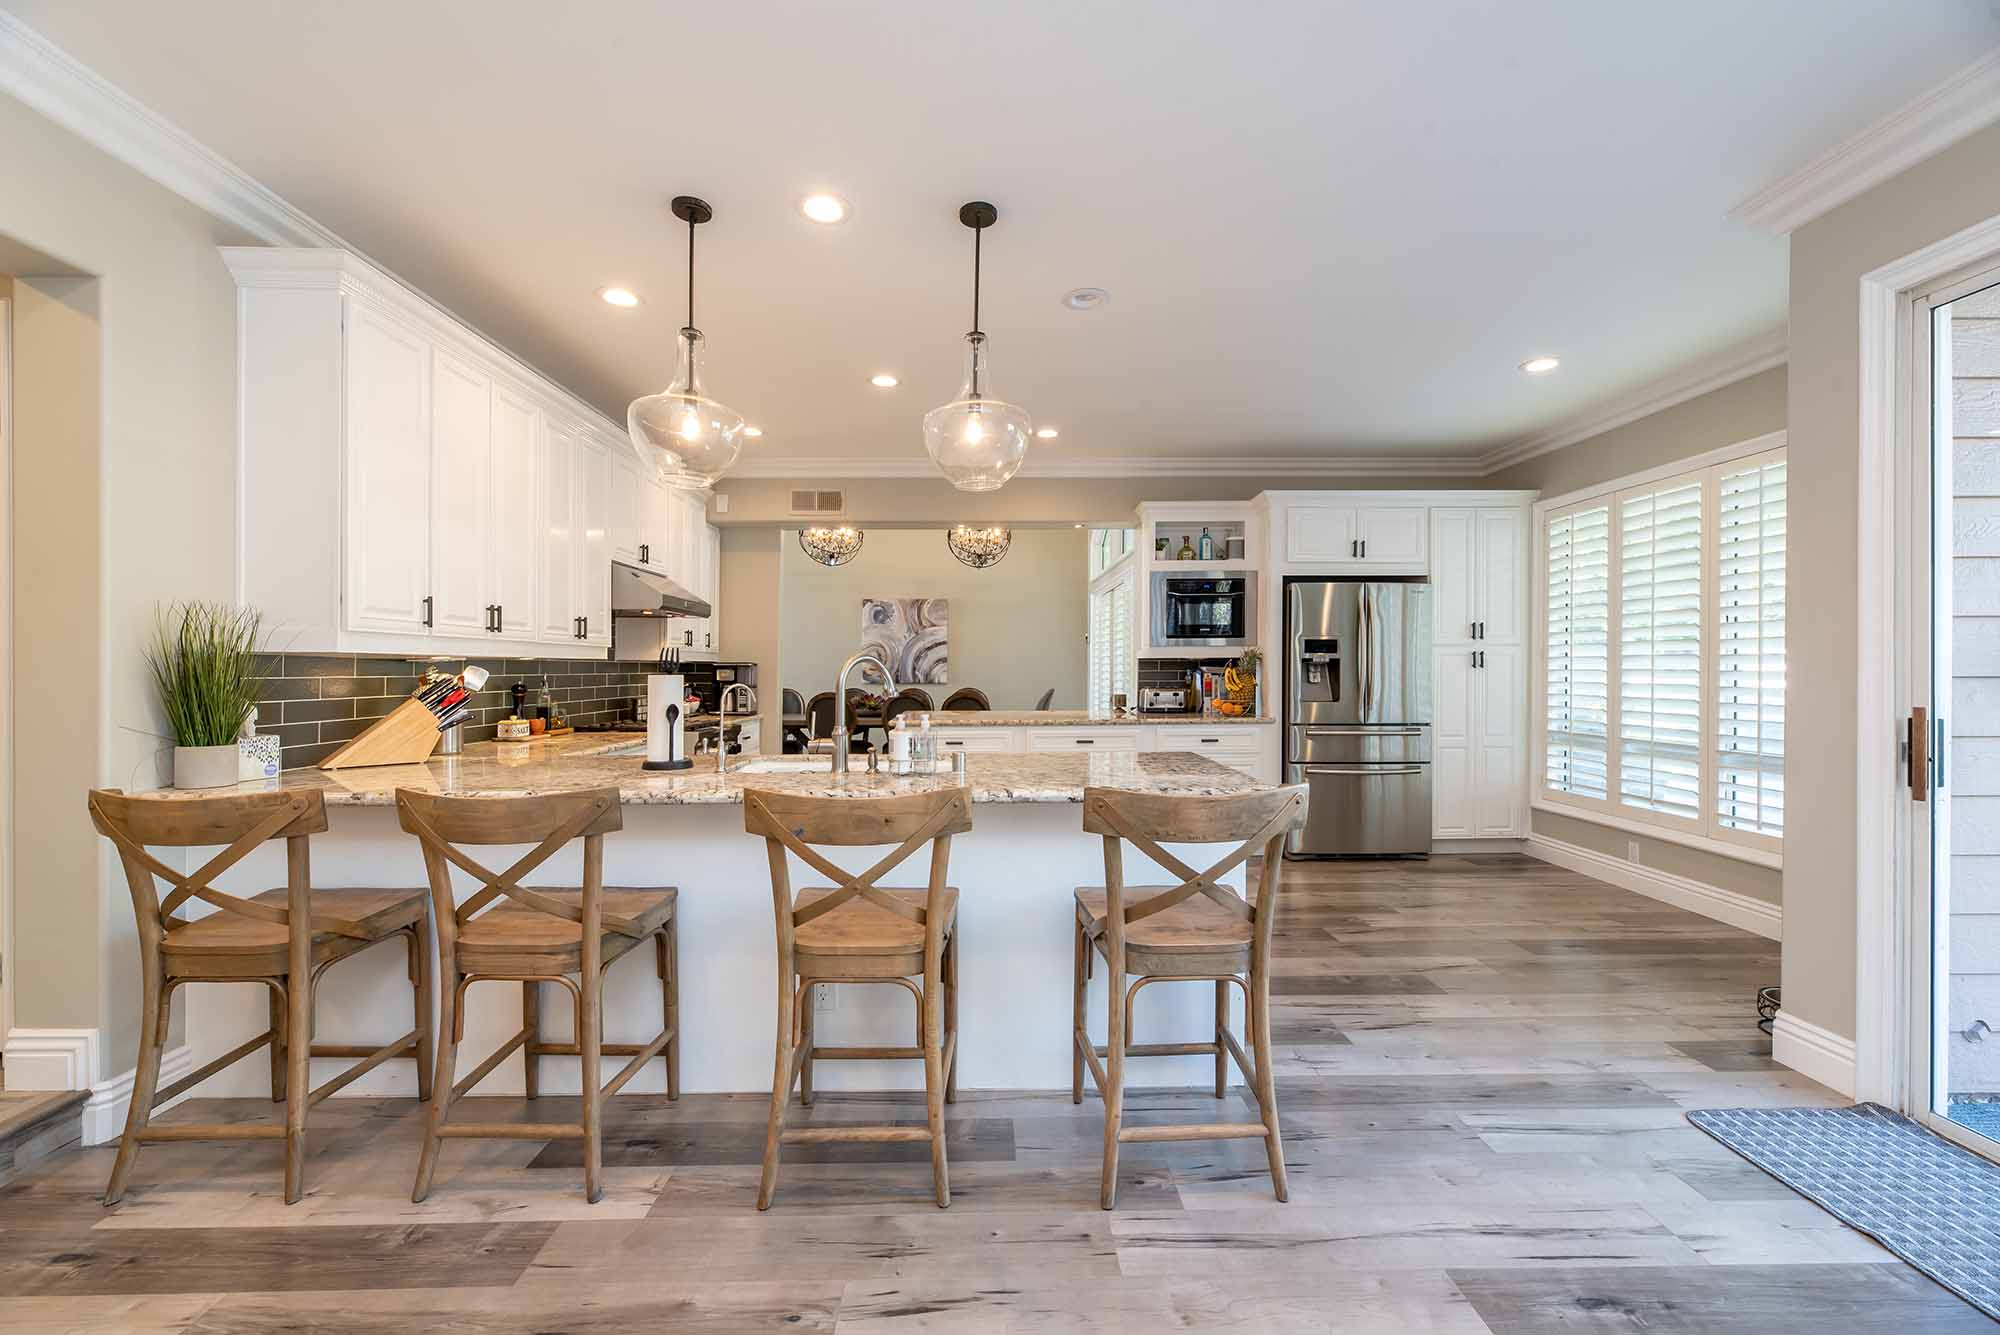 Kitchen Remodeling and home remodel Joliet IL - Prime Baths and Home Solutions Illinois